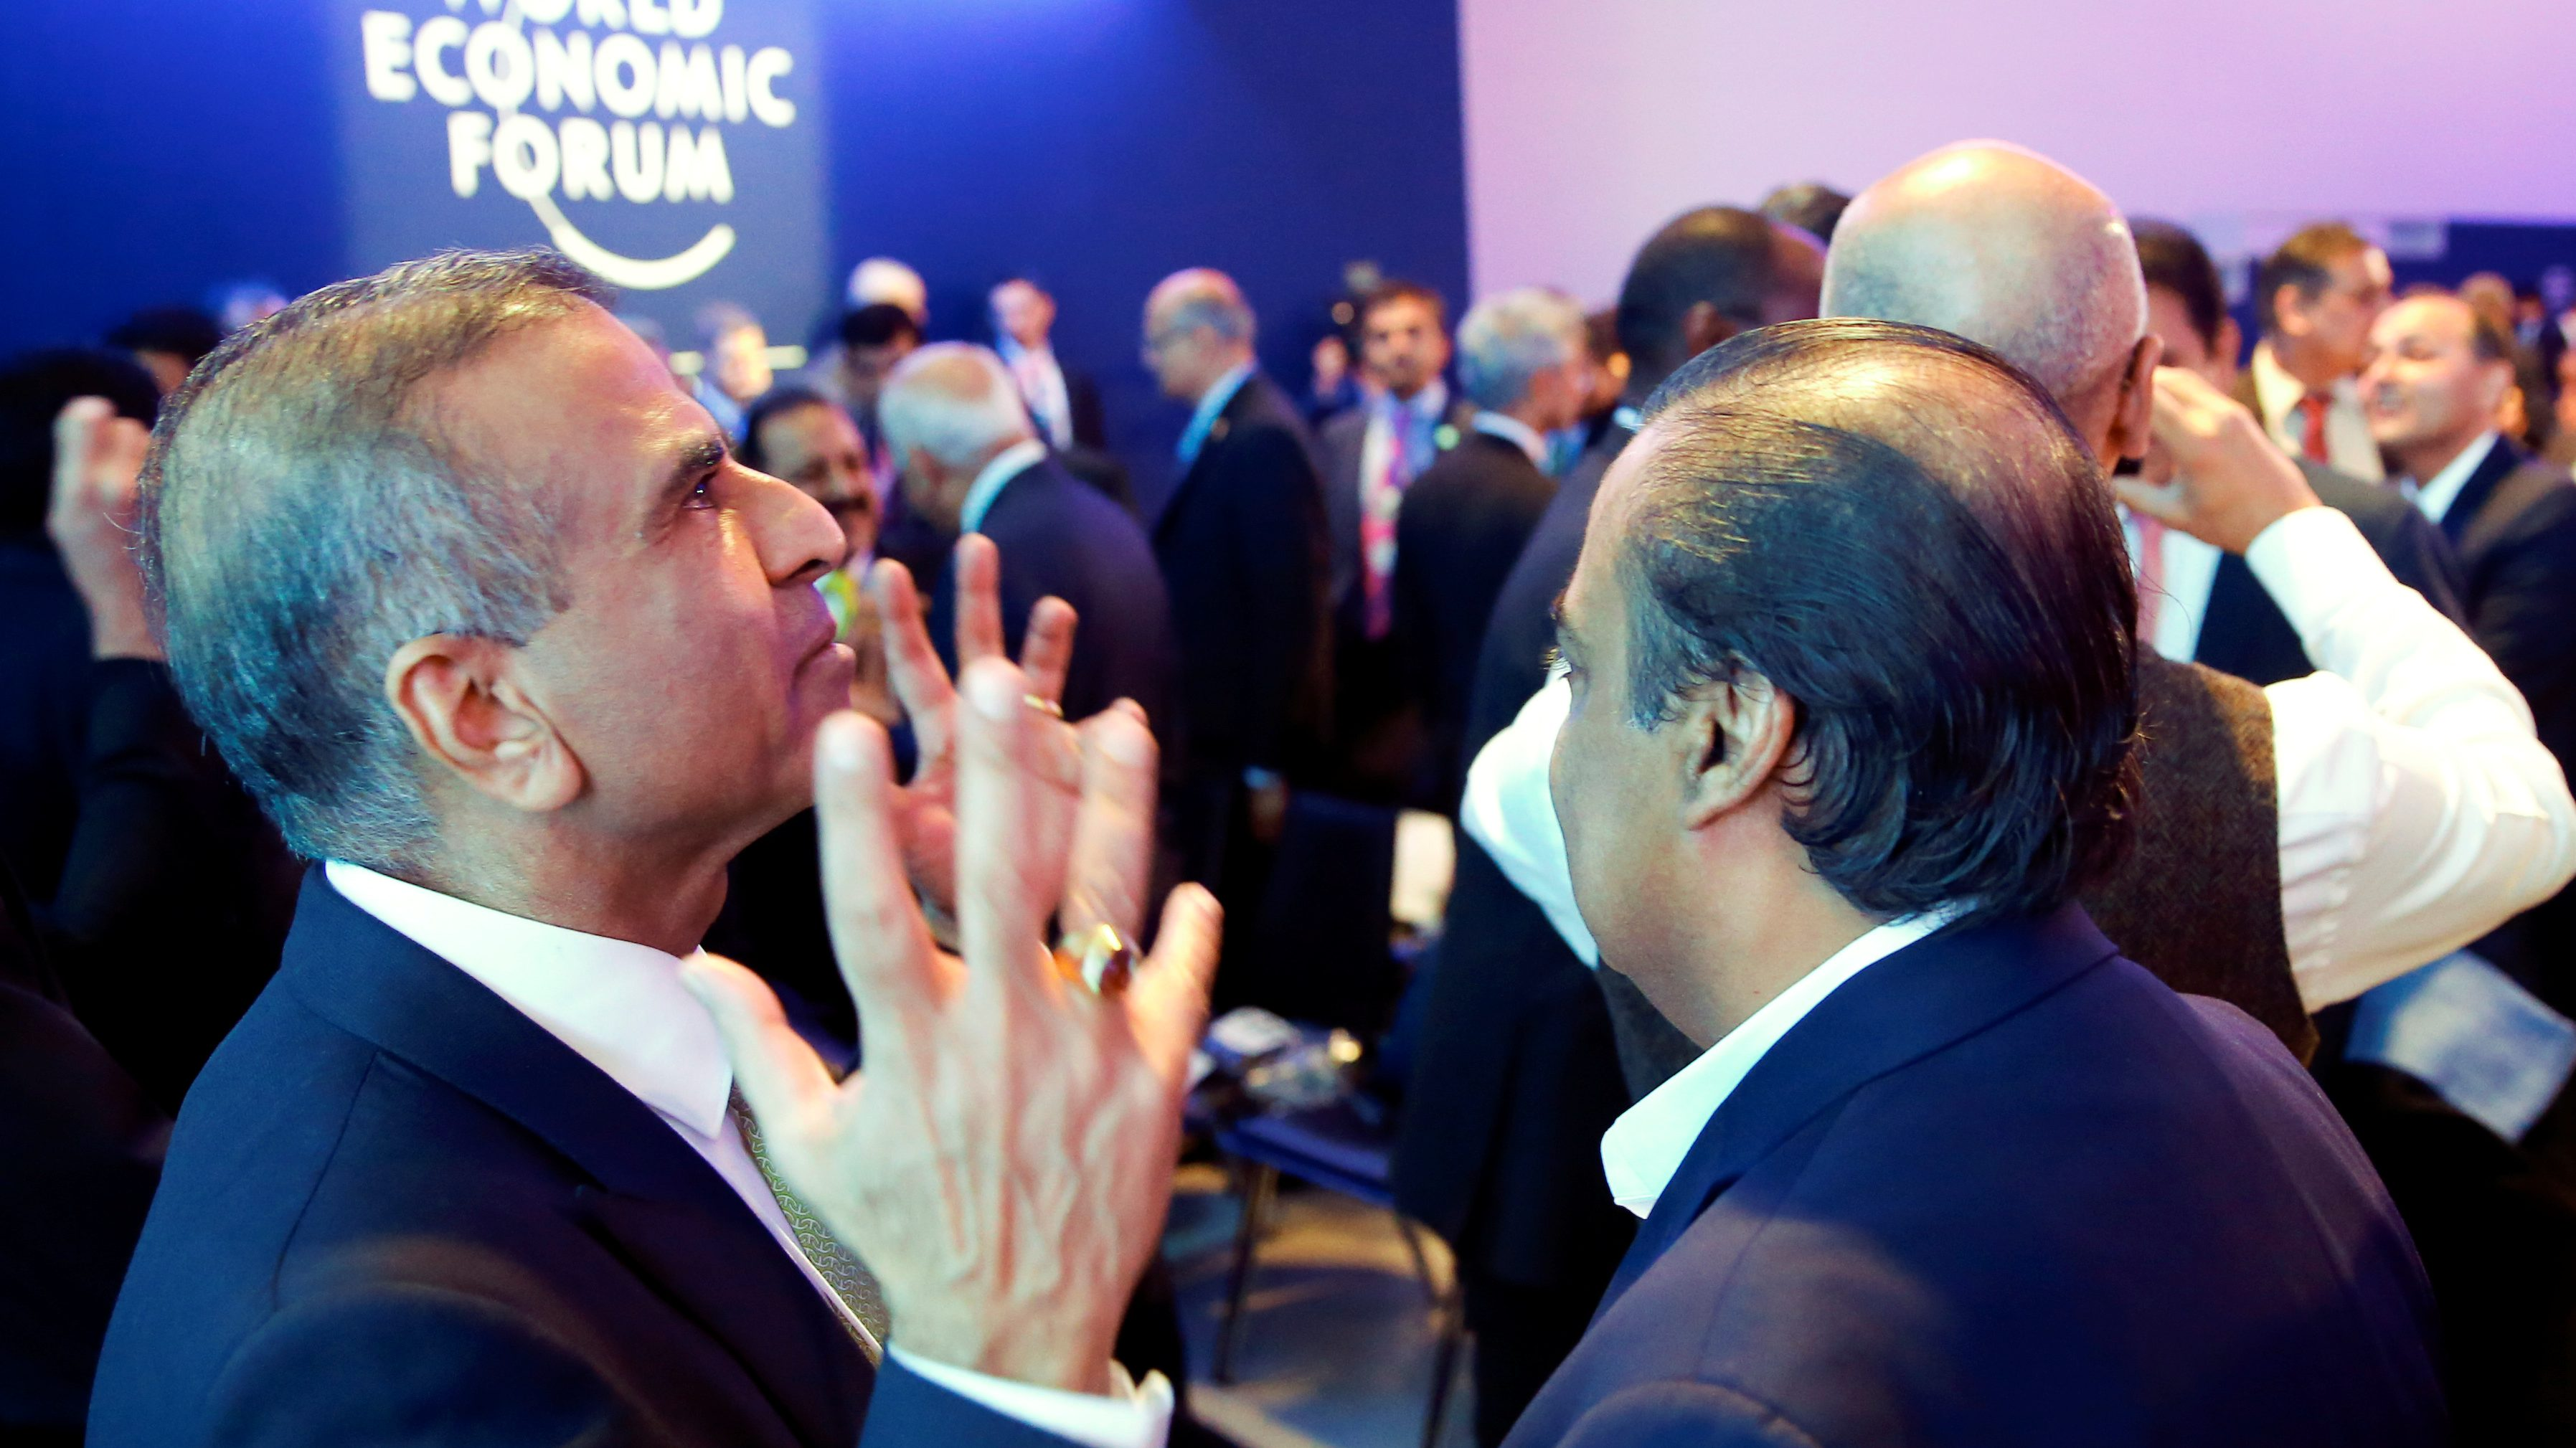 Sunil Bharti Mittal, Chairman of Bharti Enterprises (L) gestures as he speaks with Mukesh Ambani, Chairman and Managing Director of Reliance Industries, during the World Economic Forum (WEF) annual meeting in Davos, Switzerland, January 23, 2018. REUTERS/Denis Balibouse - RC1C97FBEC50